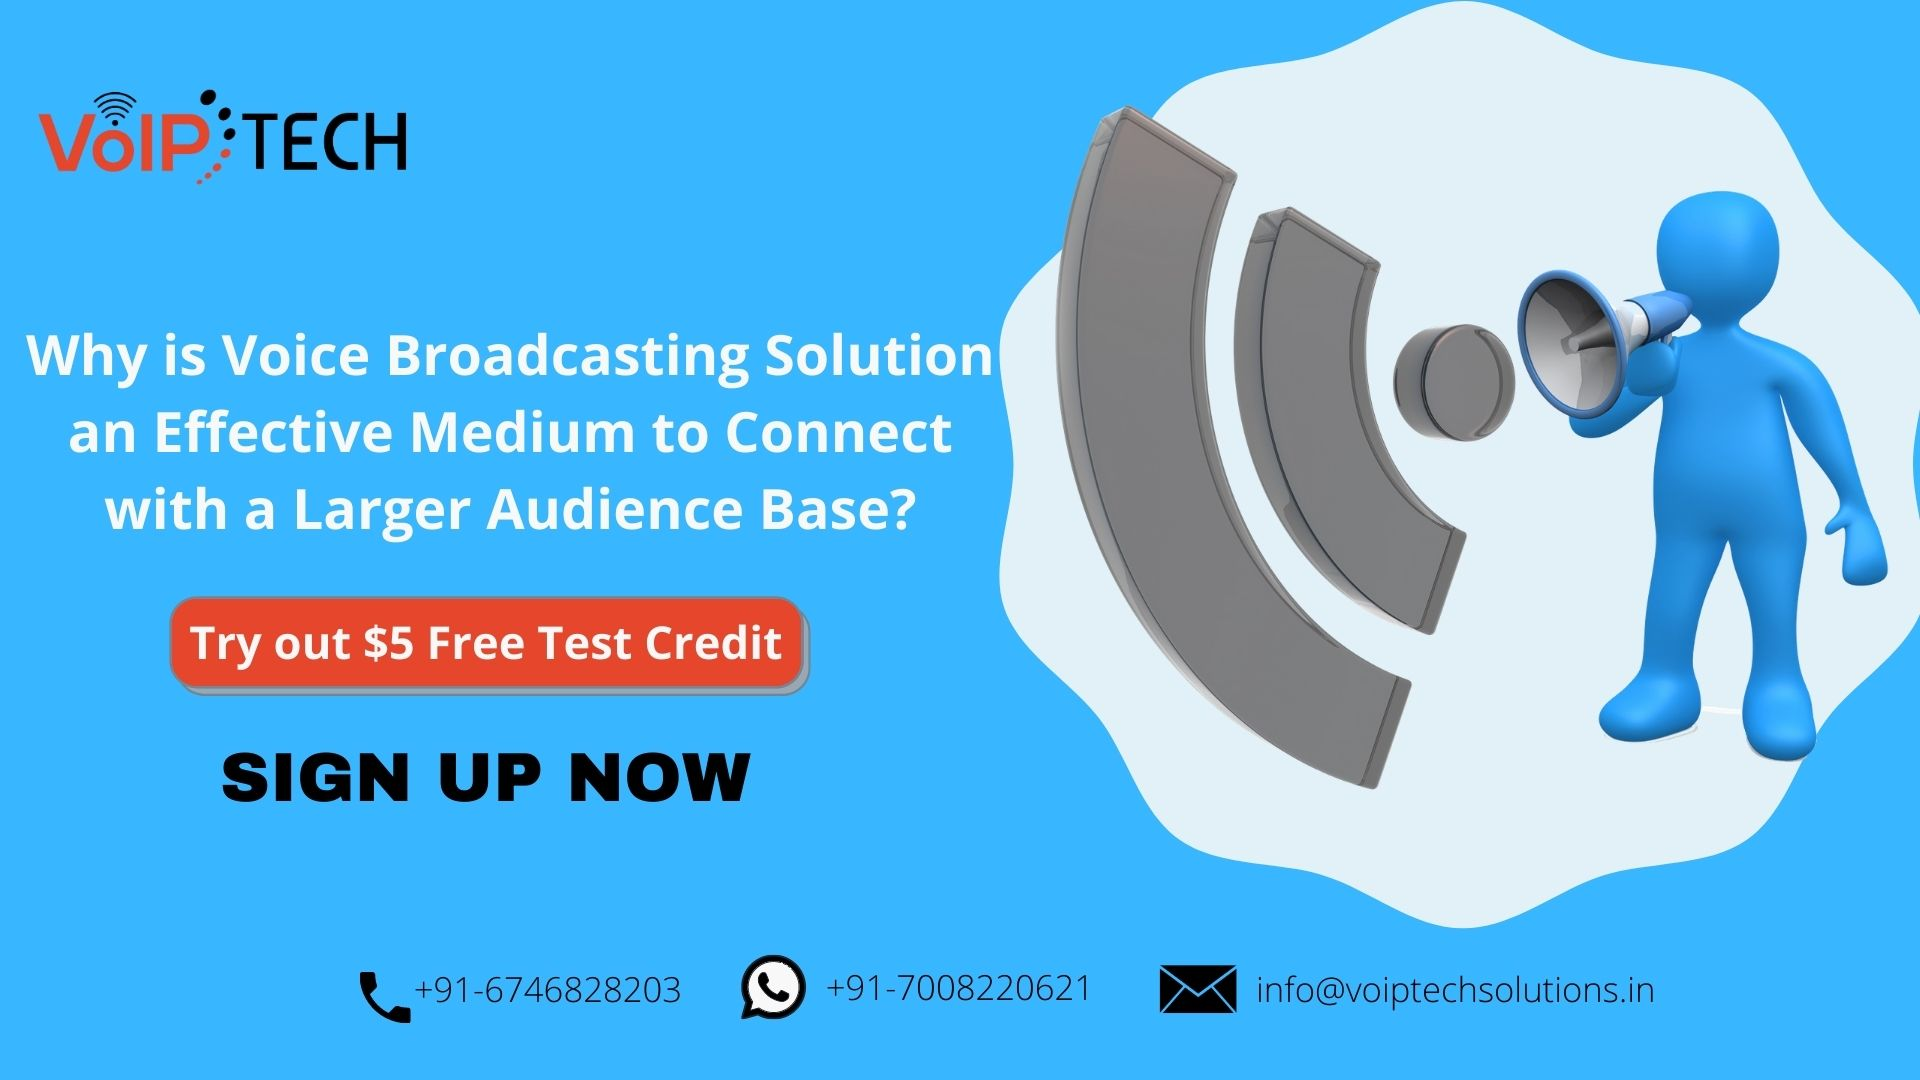 Voice Broadcasting Solutions, Why is Voice Broadcasting Solution an Effective Medium to Connect with a Larger Audience Base?, VoIP tech solutions, vici dialer, virtual number, Voip Providers, voip services in india, best sip provider, business voip providers, VoIP Phone Numbers, voip minutes provider, top voip providers, voip minutes, International VoIP Provider